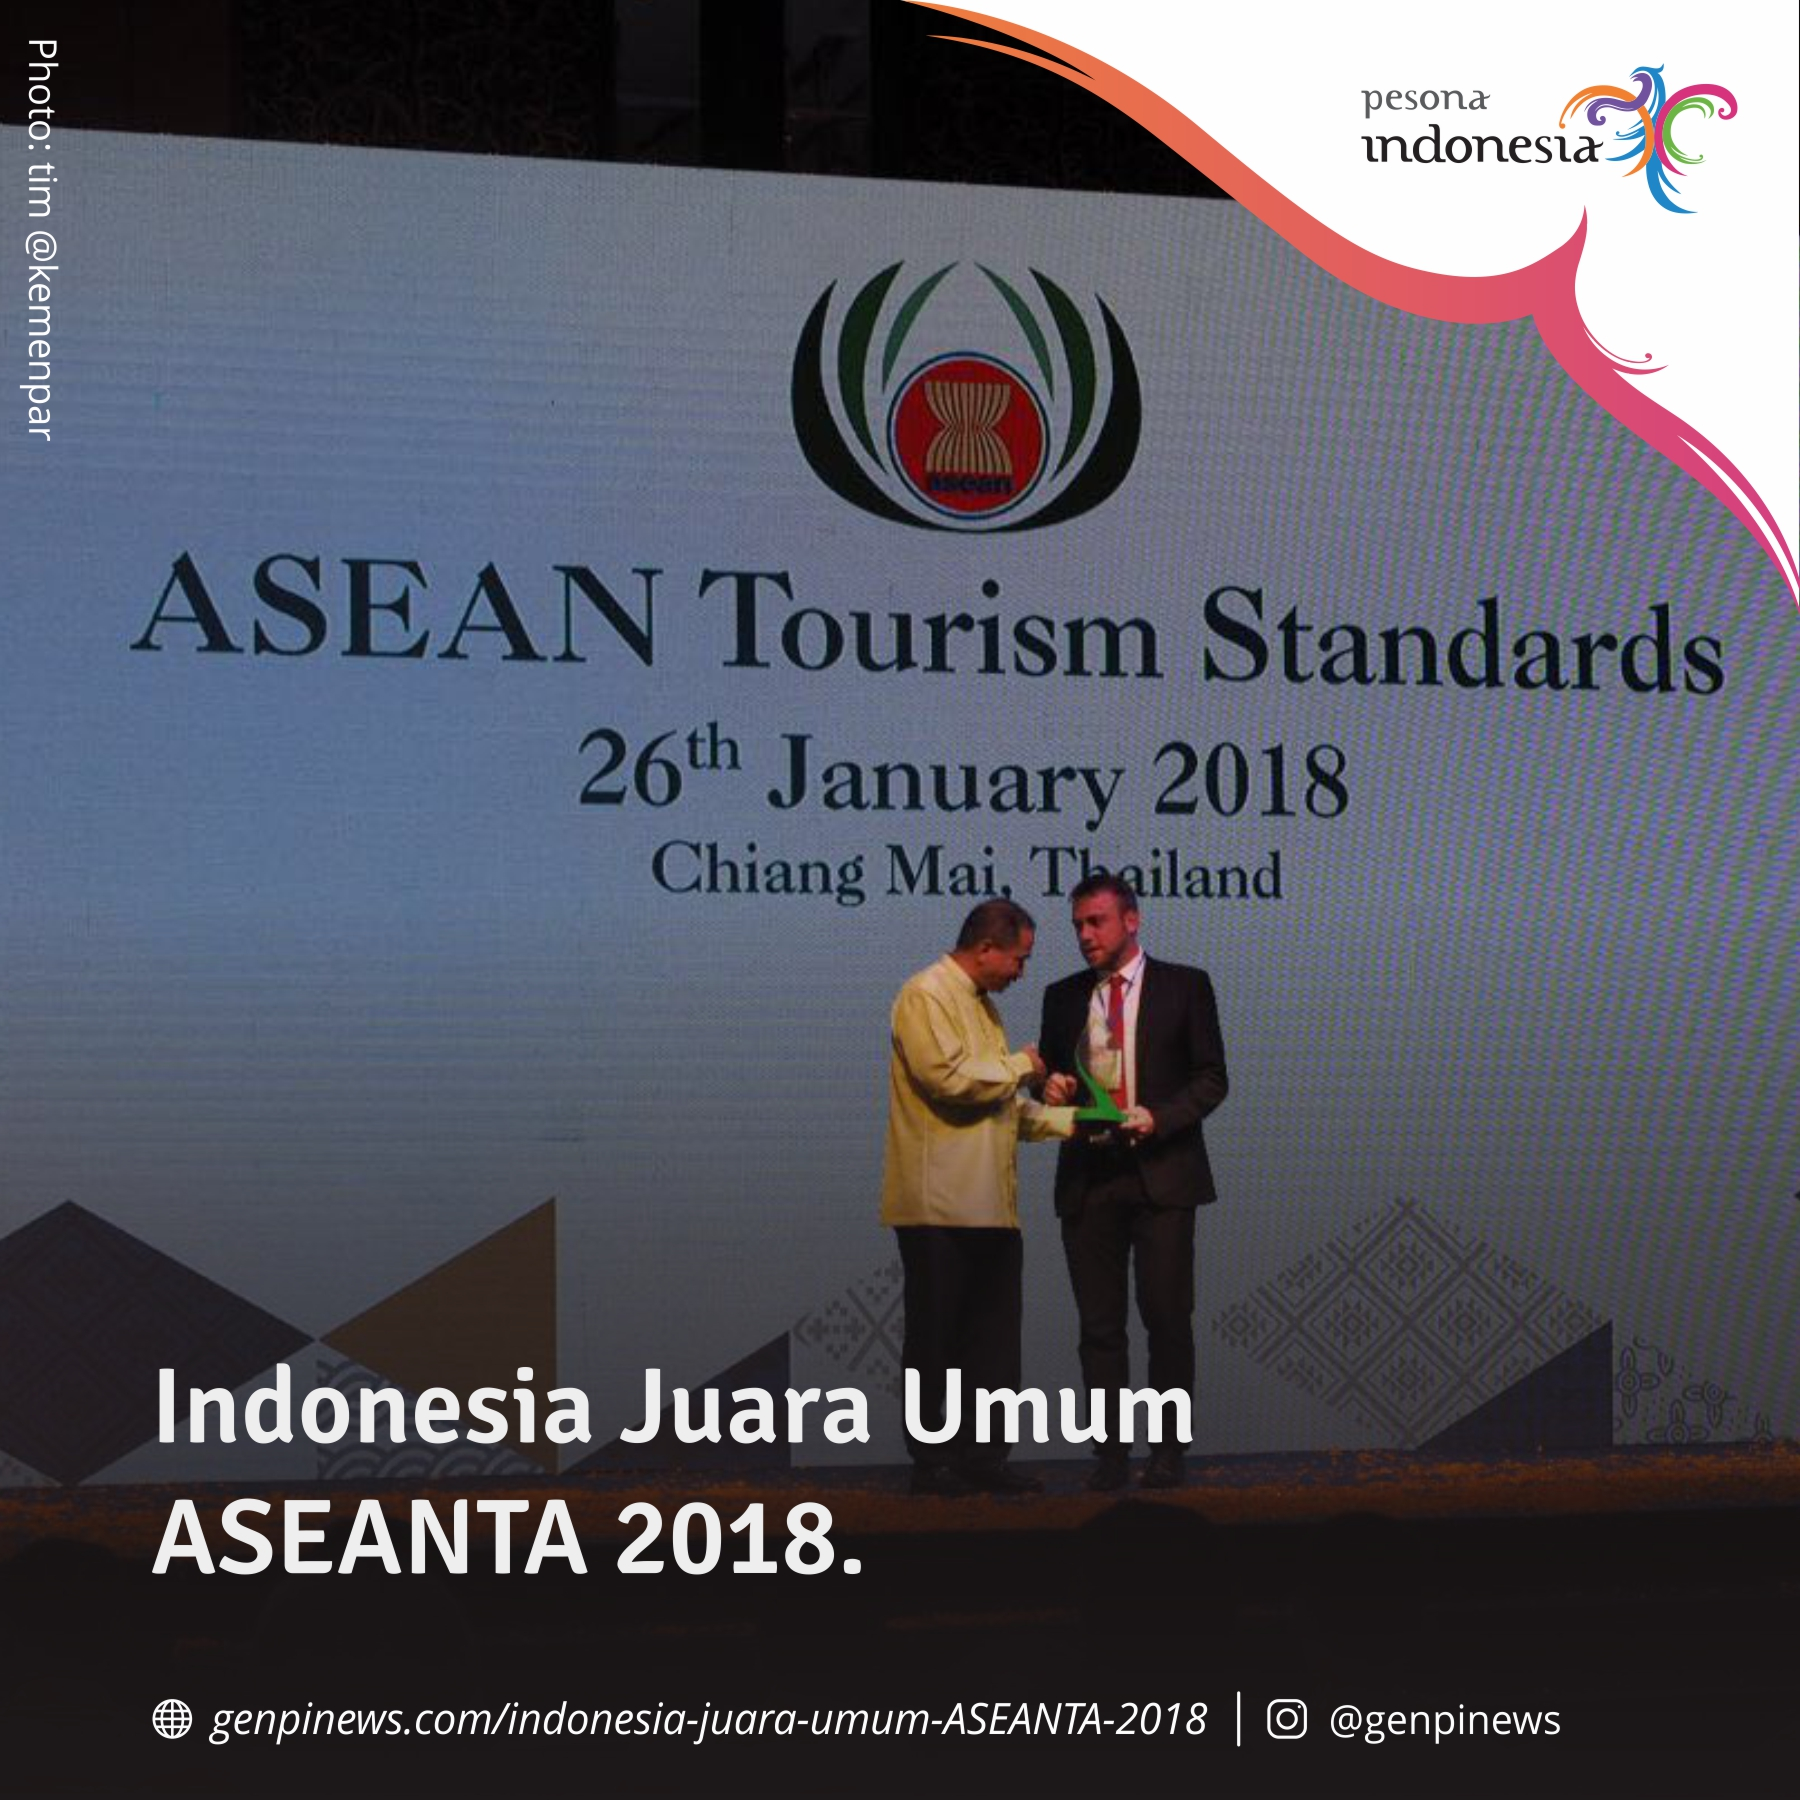 Indonesia Juara Umum ASEAN Tourism Award